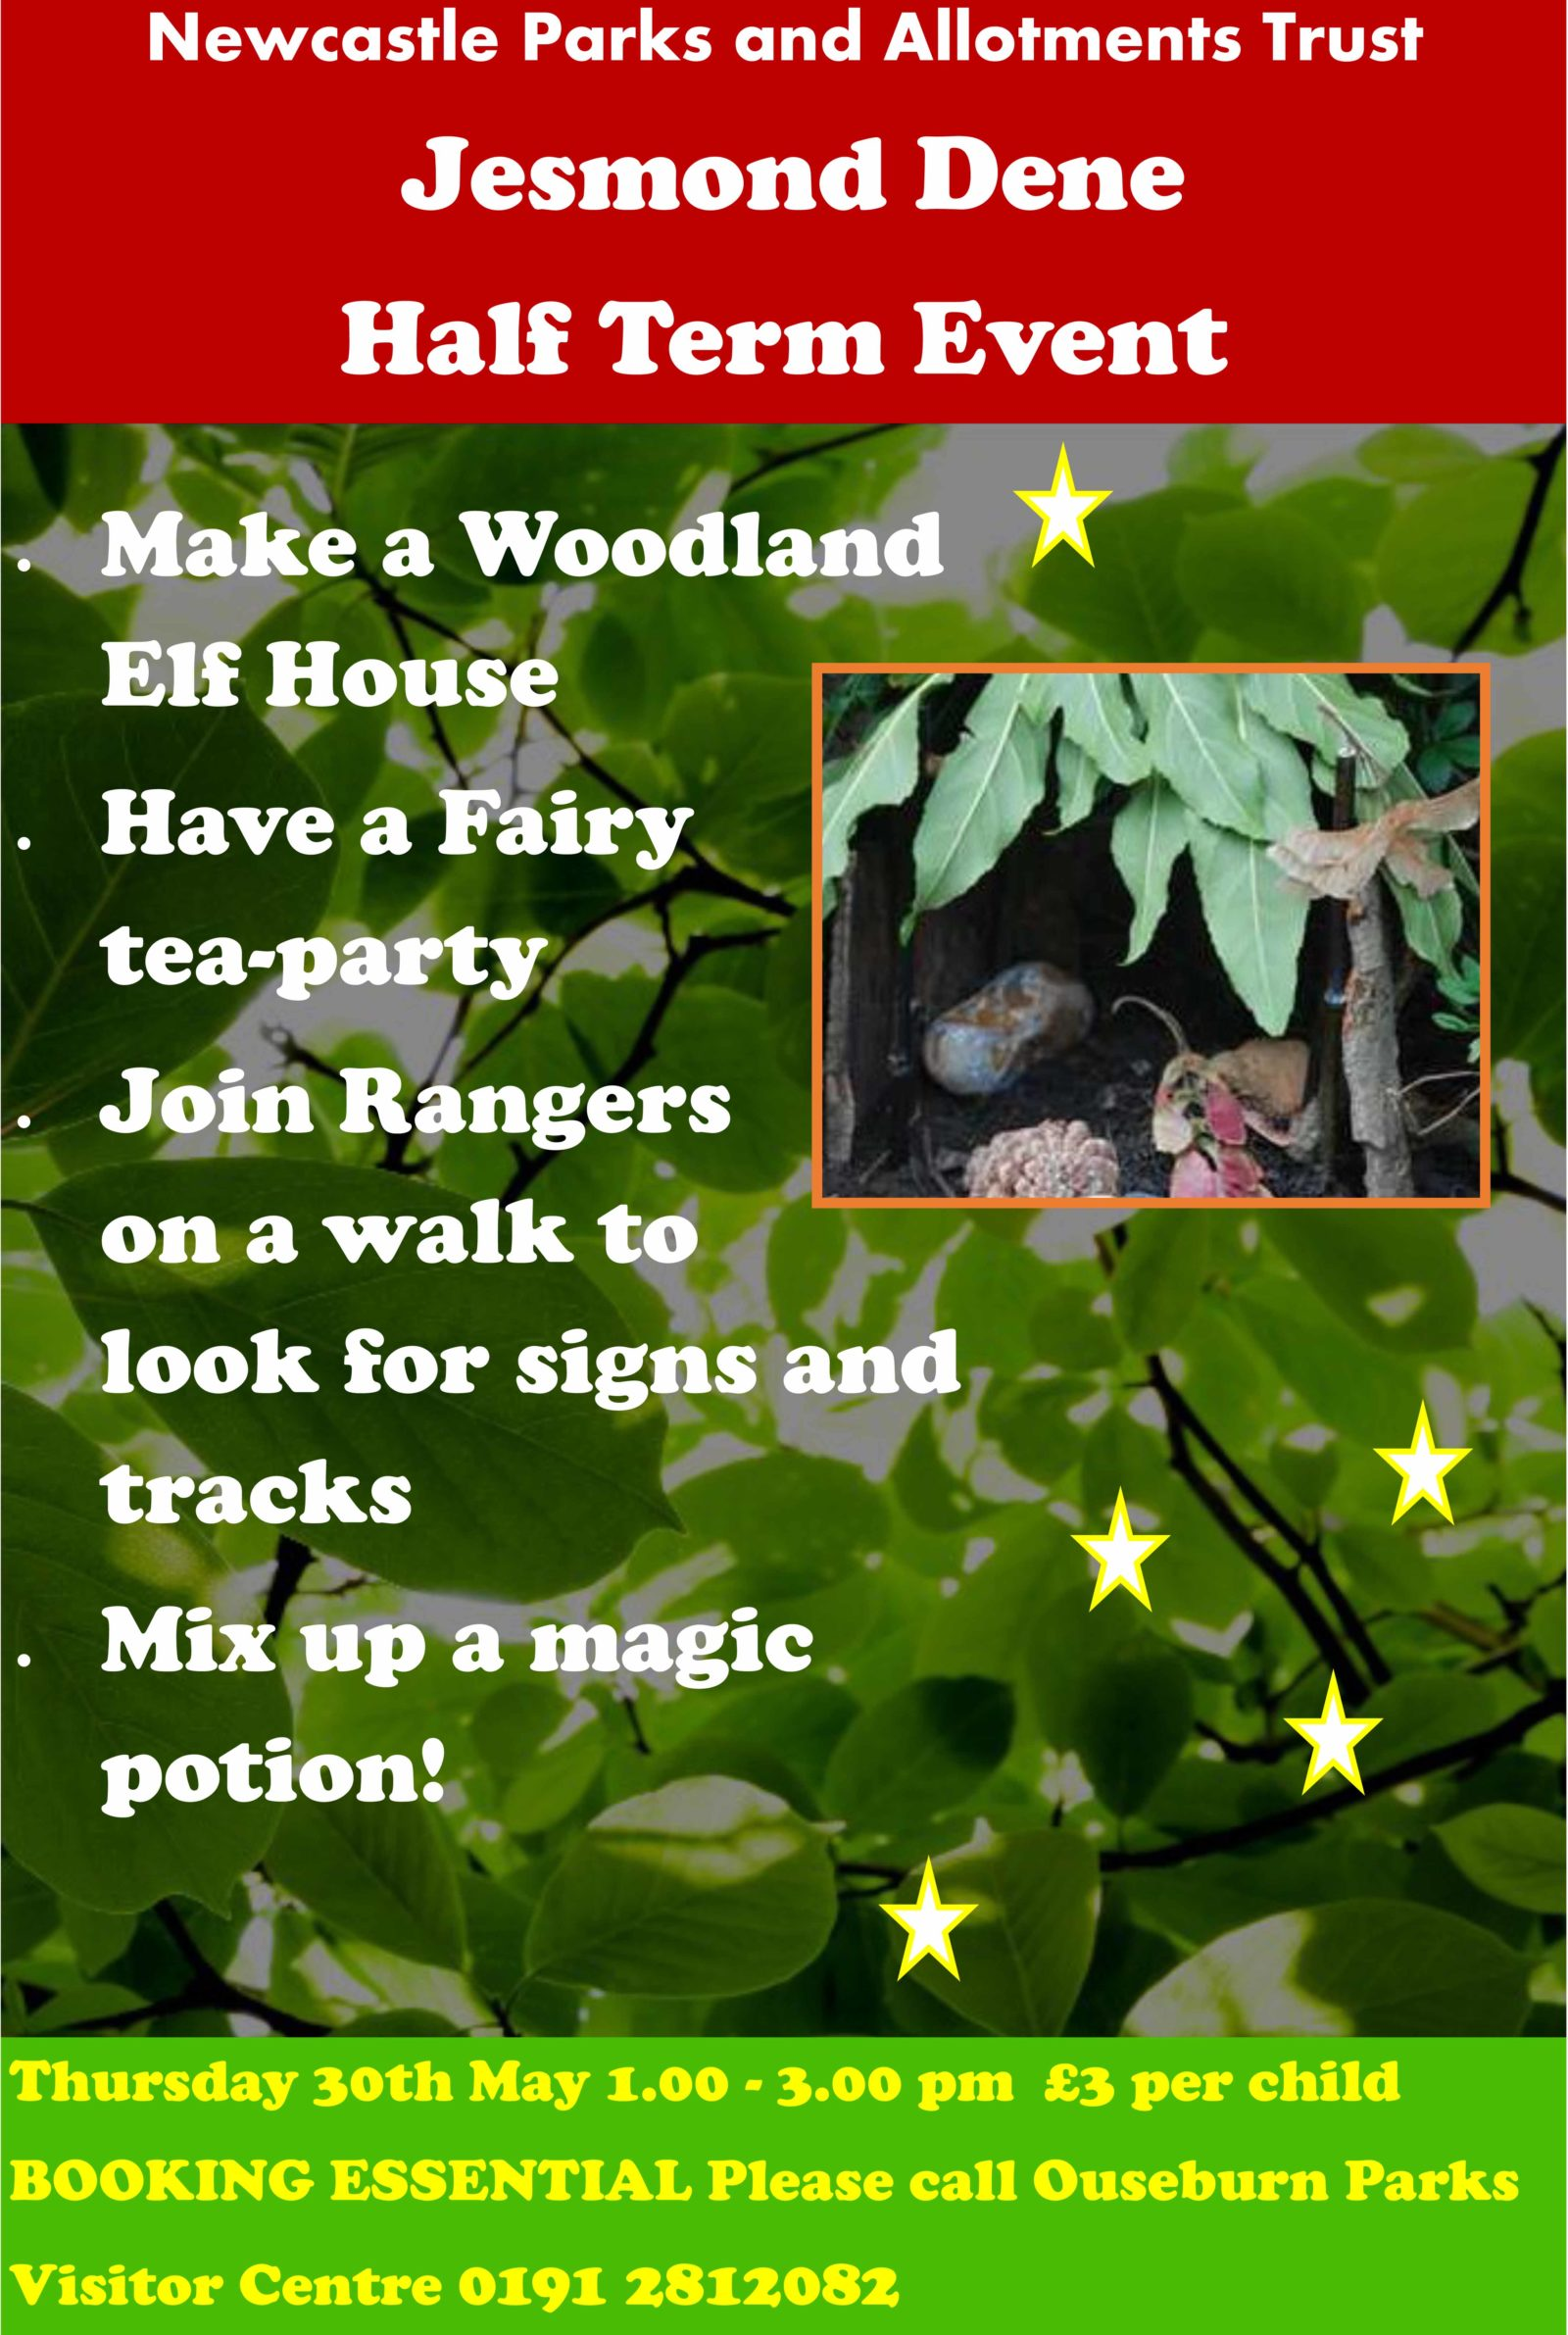 Jesmond Dene Half Term Events.   - Make a woodland elf house  - Have a Fairy tea party  - Join Rangers on a walk to look for signs and tracks  - Mix up a magic potion  Thursday 30th May 1-3pm £3 per Child.  Booking Essential 0191 2812082